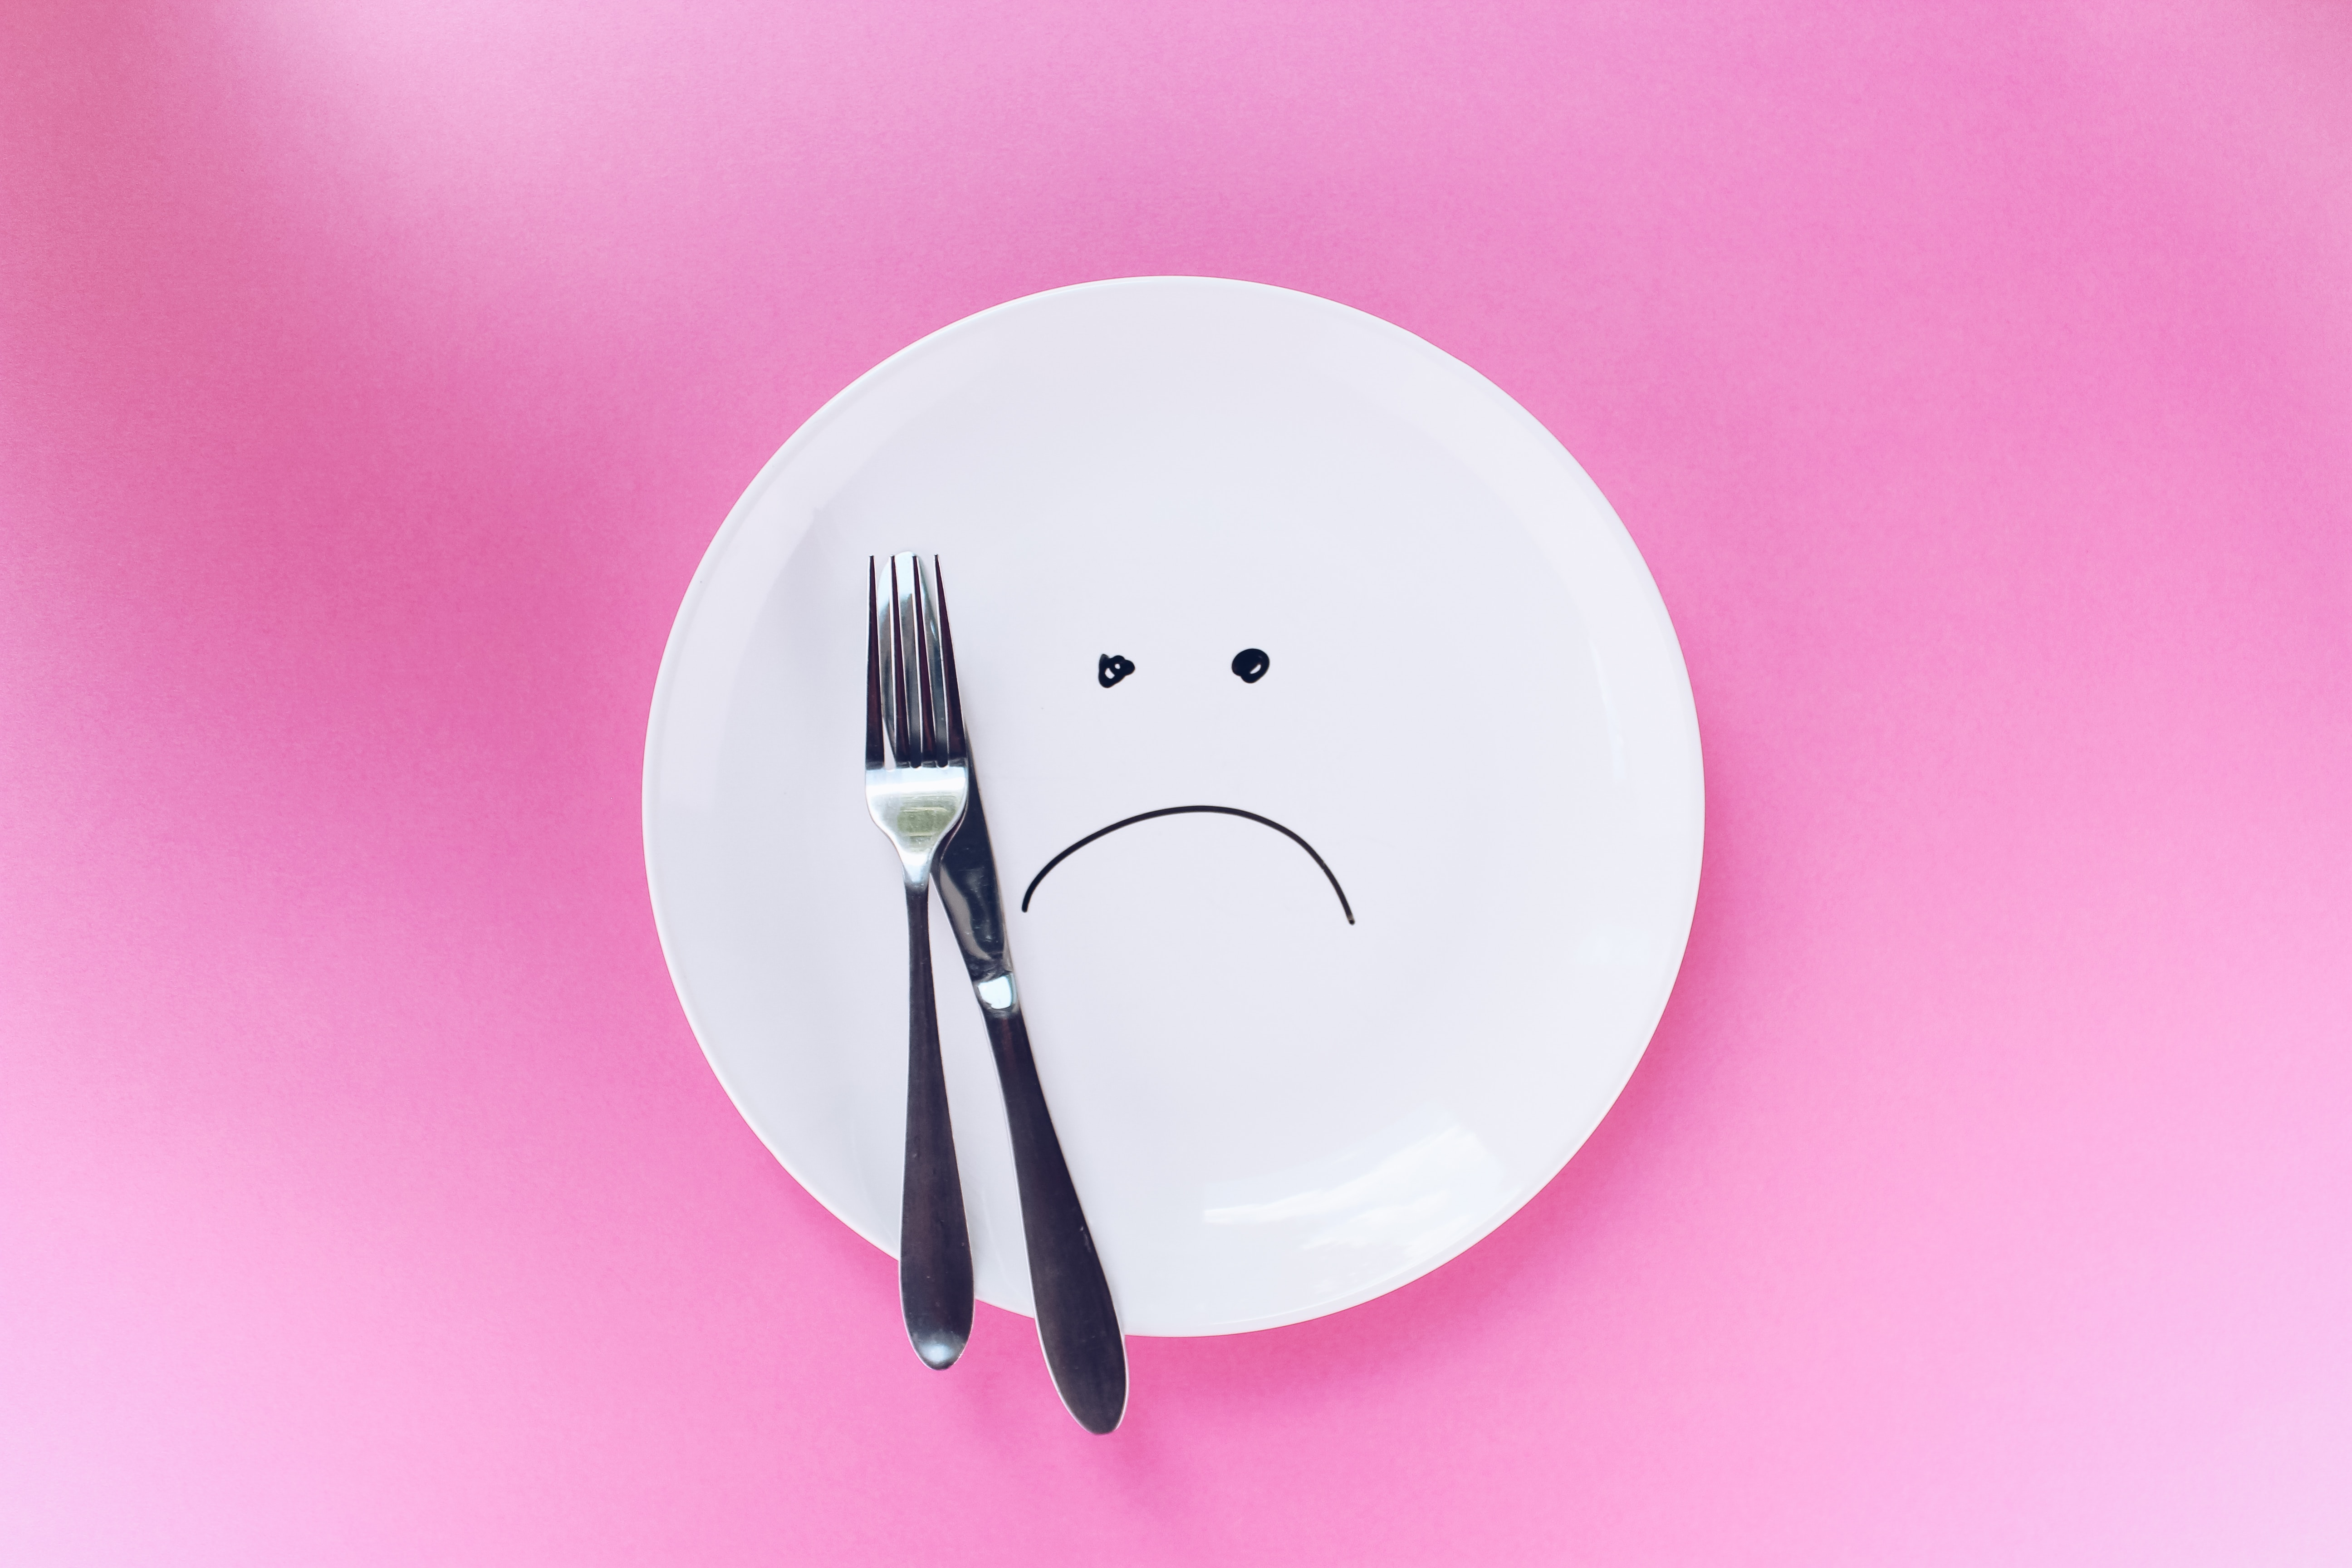 plate with frown on pink background